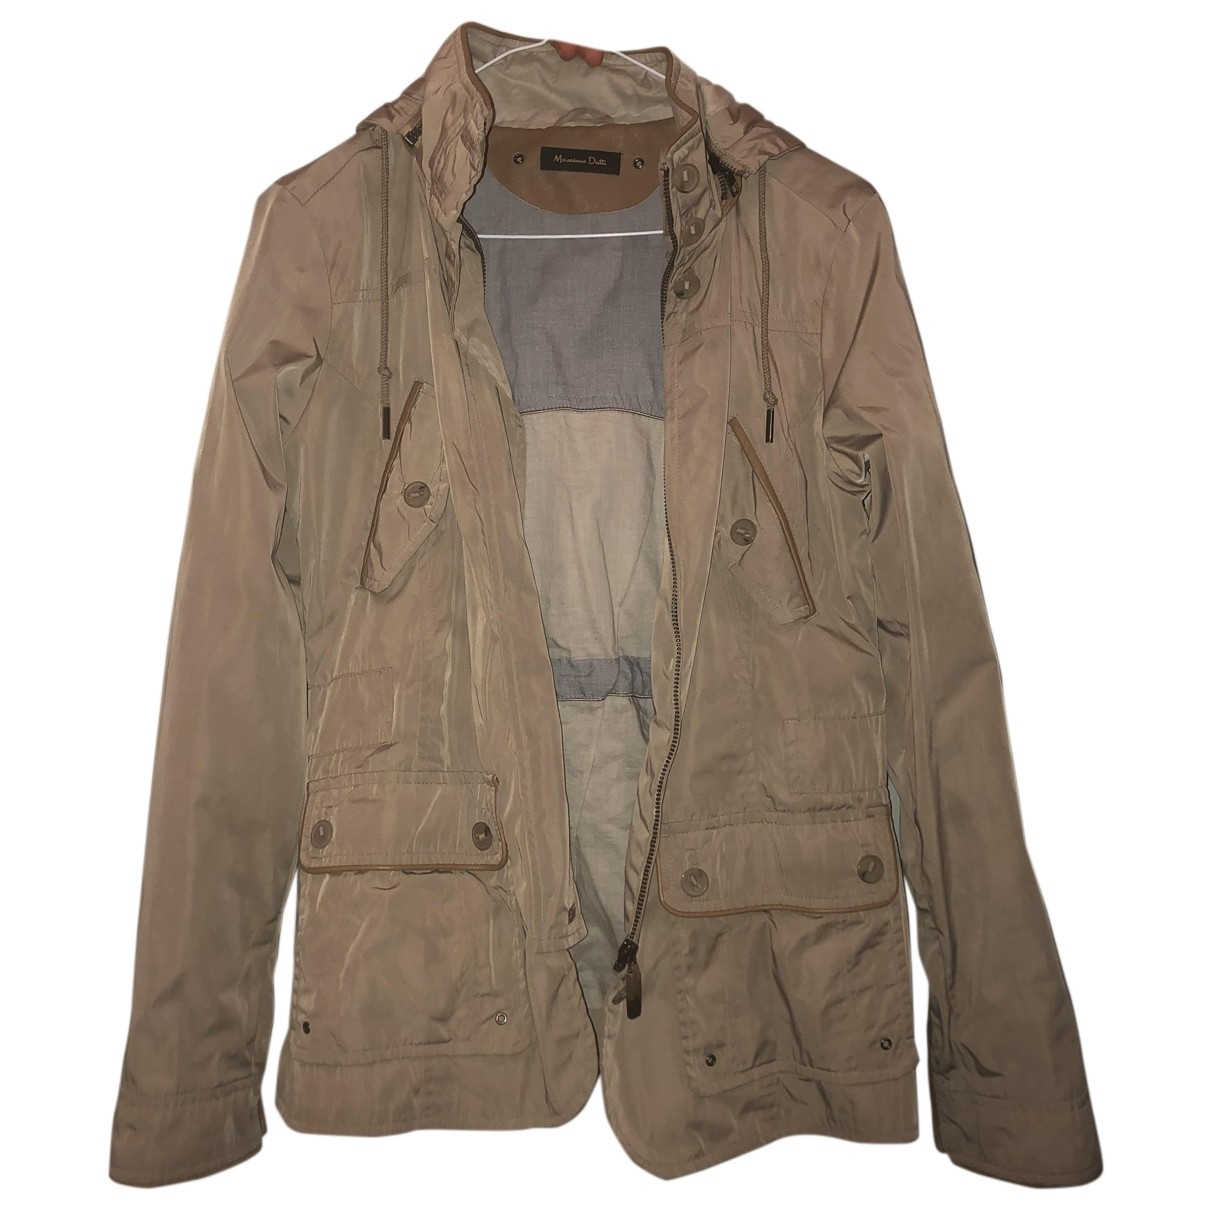 Massimo Dutti \N Beige Cotton jacket for Women S International